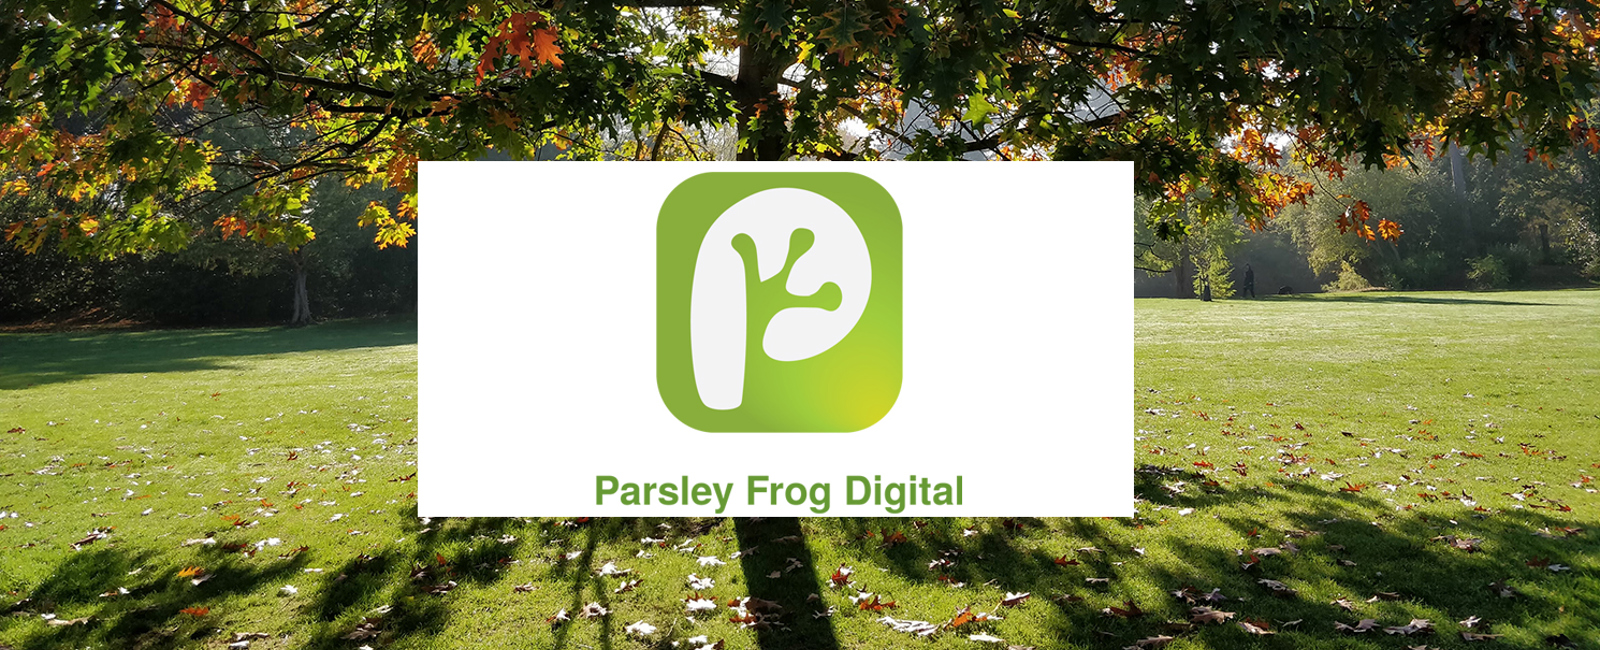 A tree in a field with the Parsley Frog logo in front